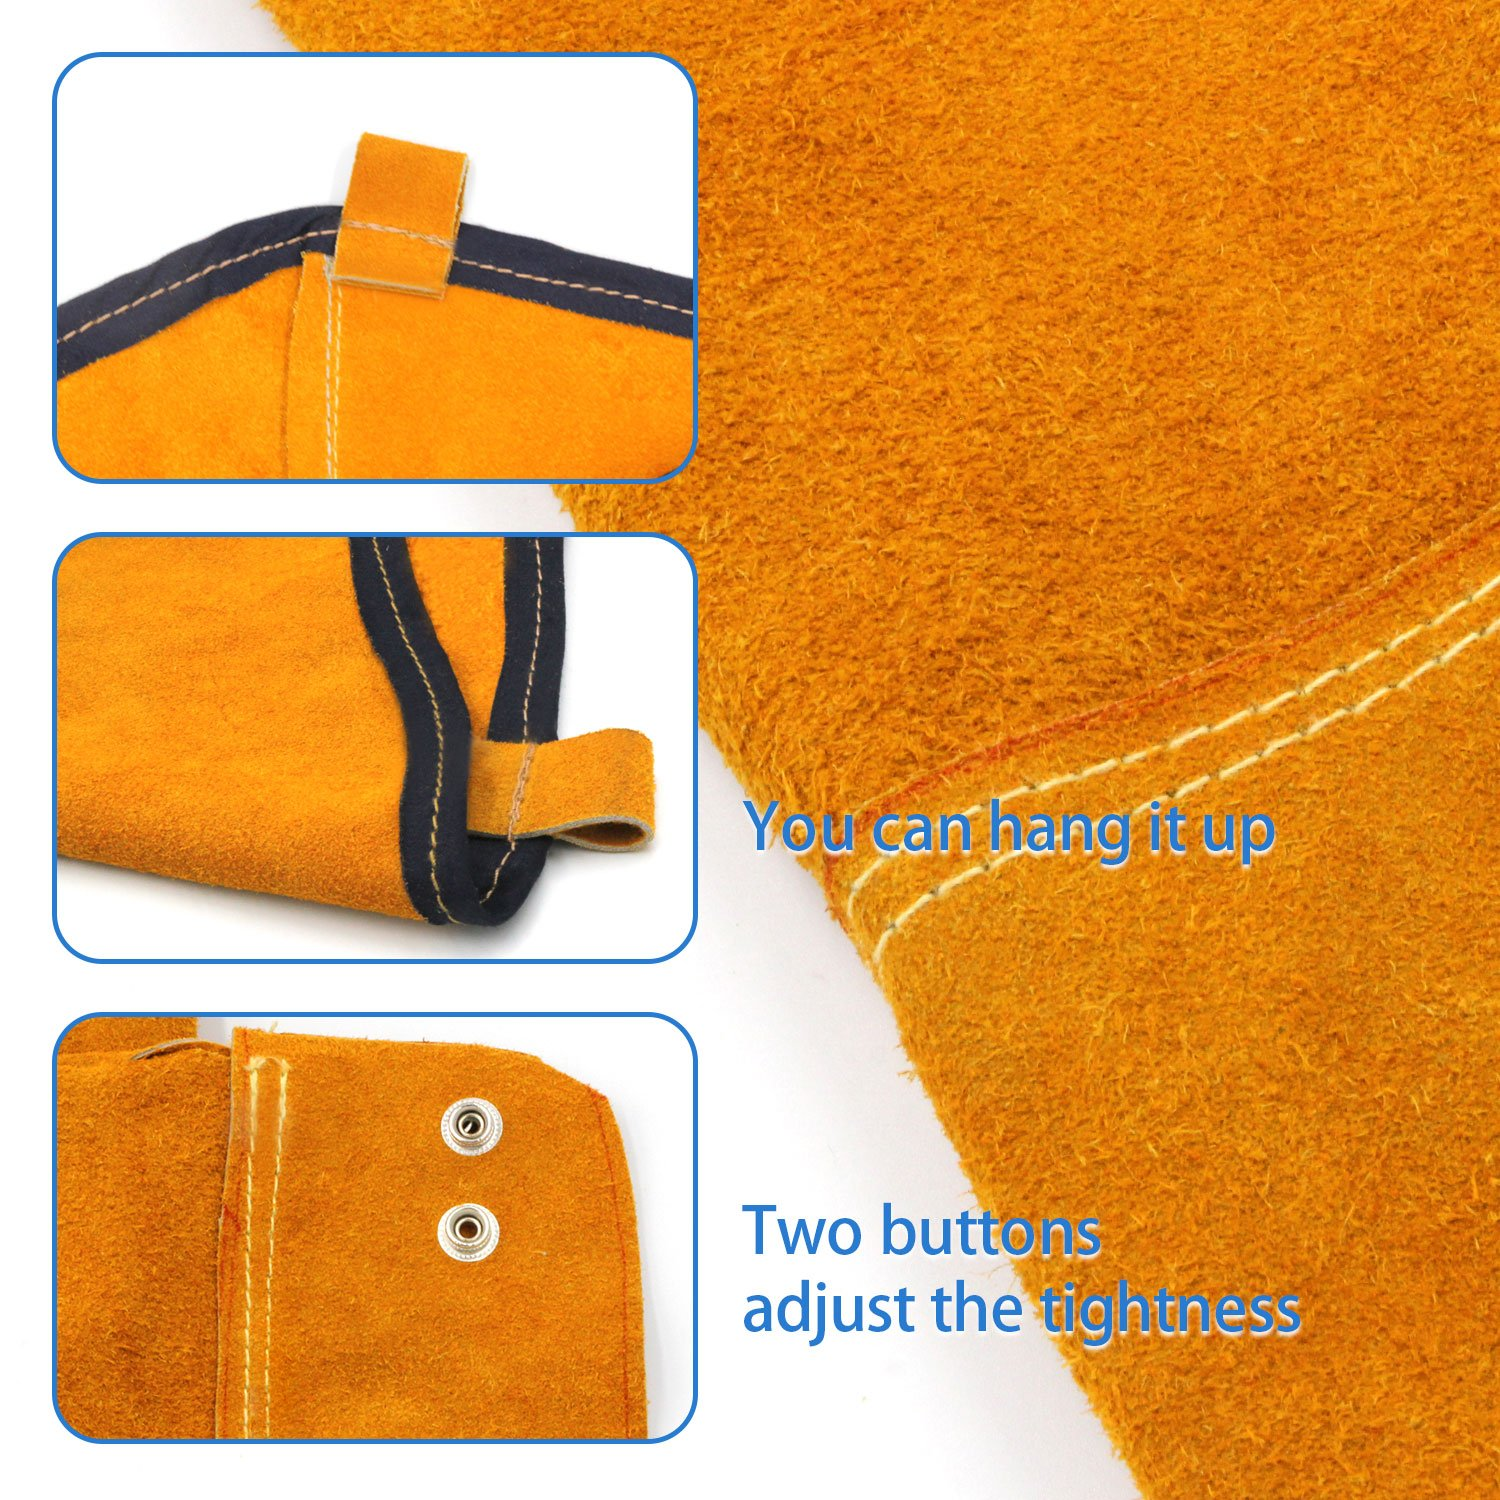 Heat Resistant Welding Sleeves,Leather Sleeves for welding, Button closure,Spark Resistant Protection,1 Pair (yellow) by Handook (Image #2)